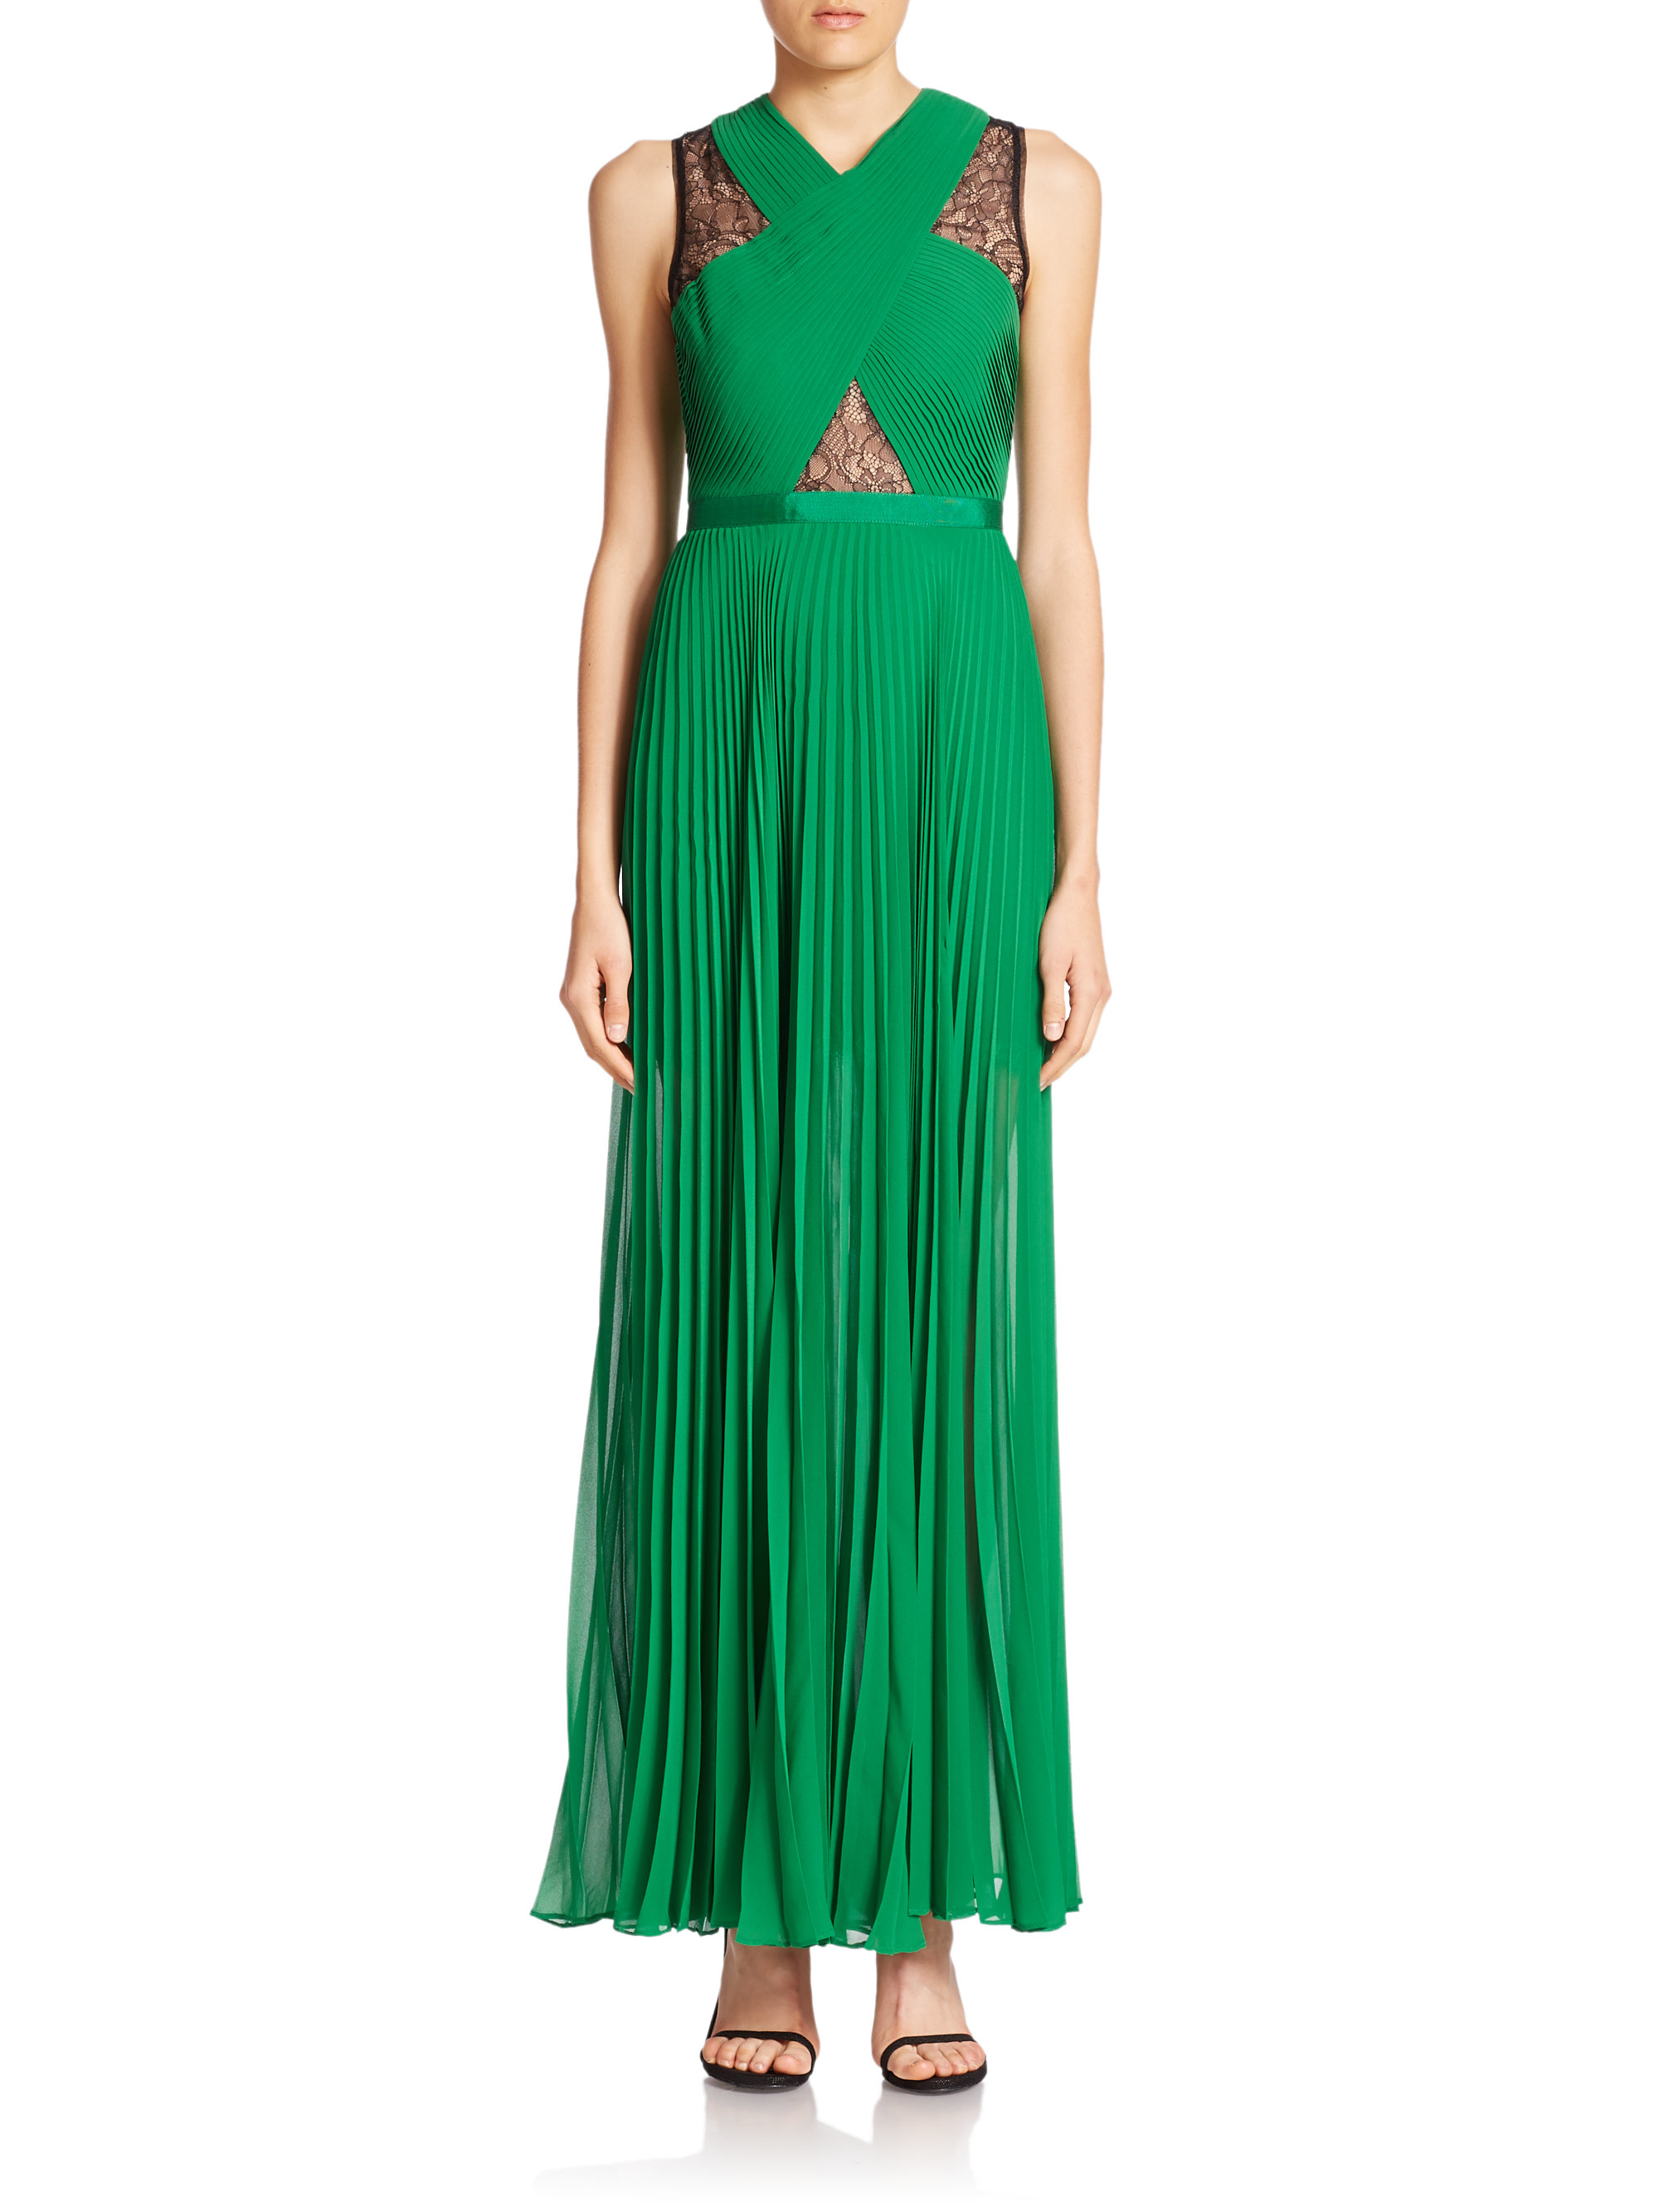 Lyst - Bcbgmaxazria Caia Pleated Illusion Dress in Green